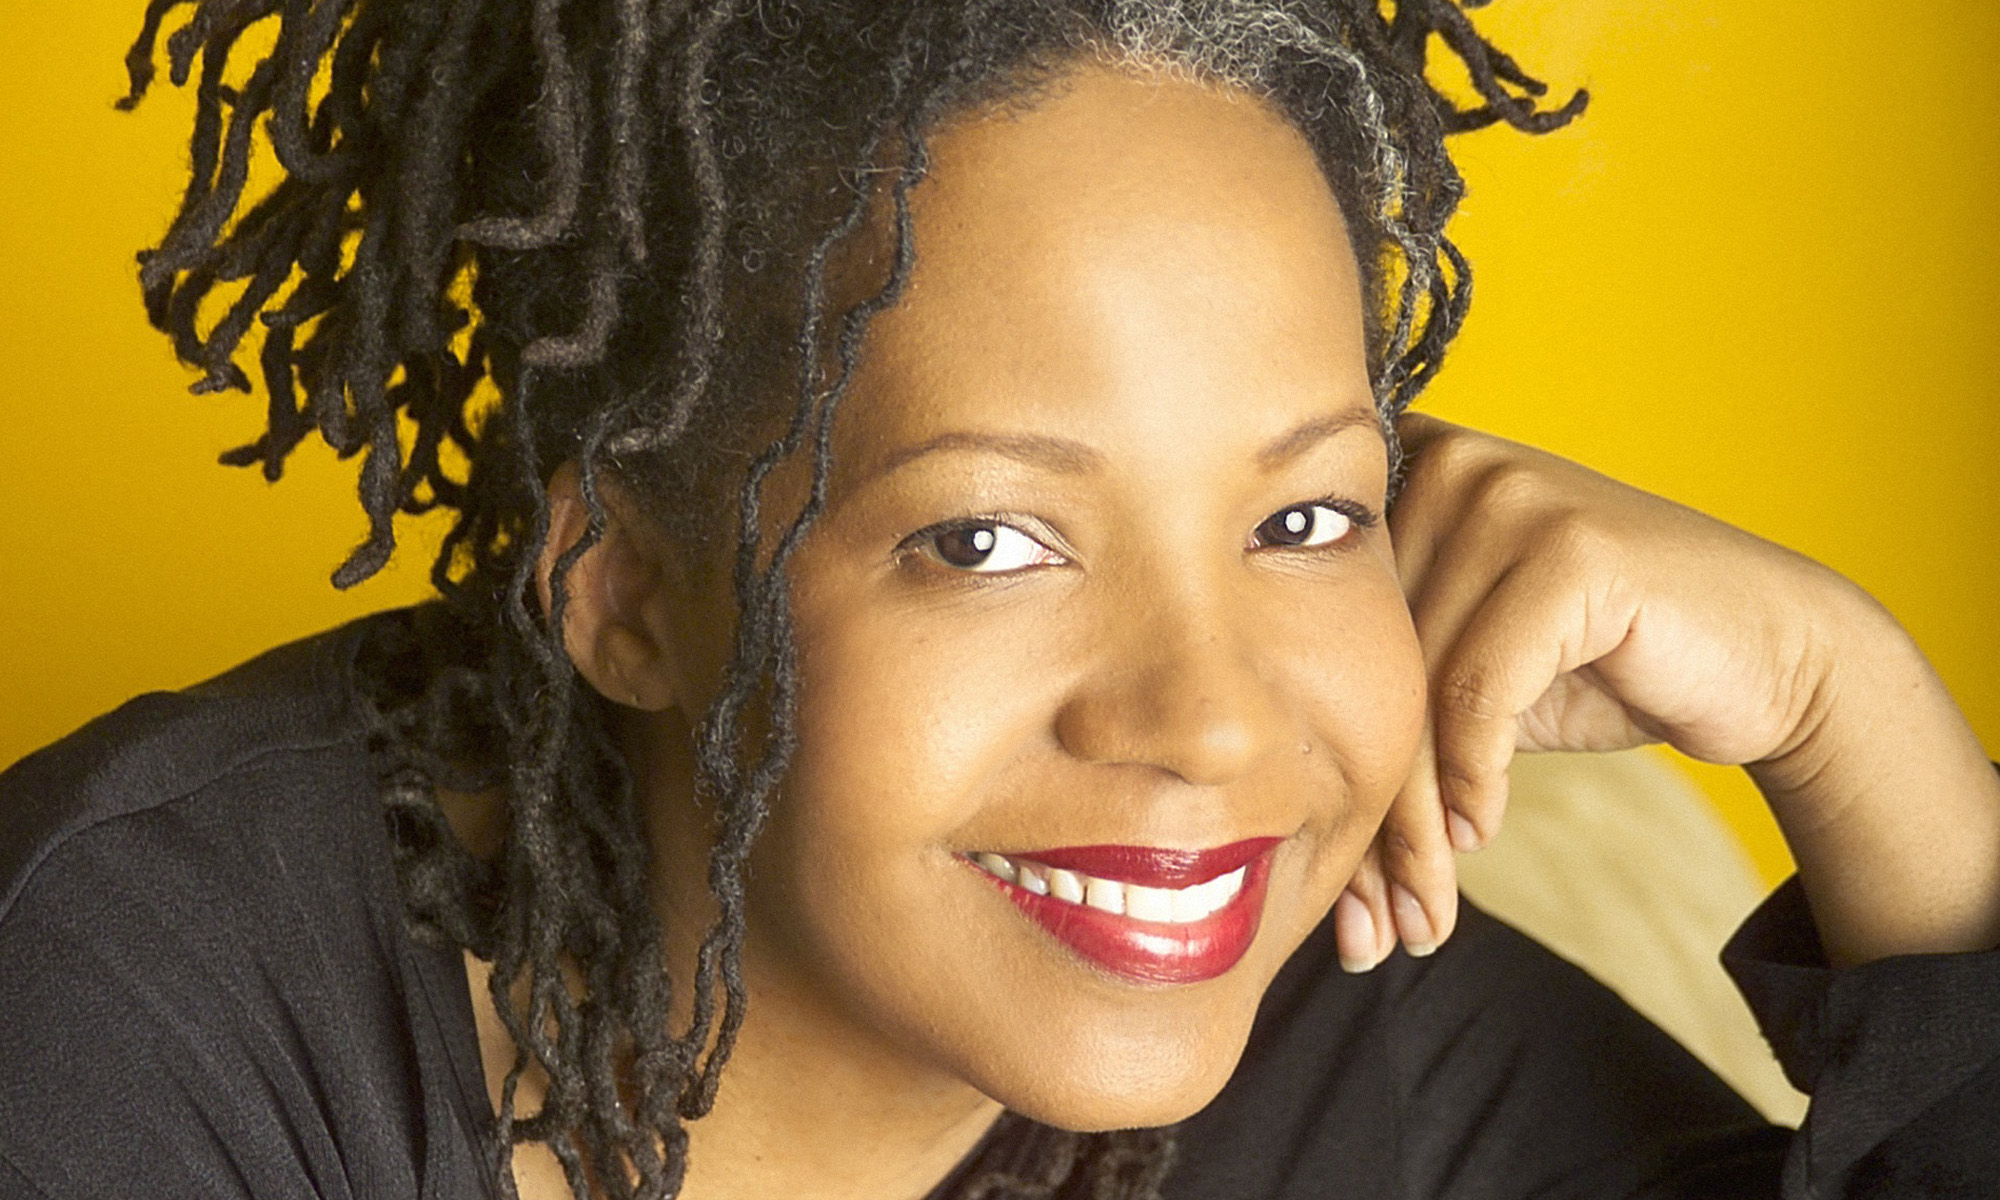 The Donna Woodall Trio will headline this inaugural event.